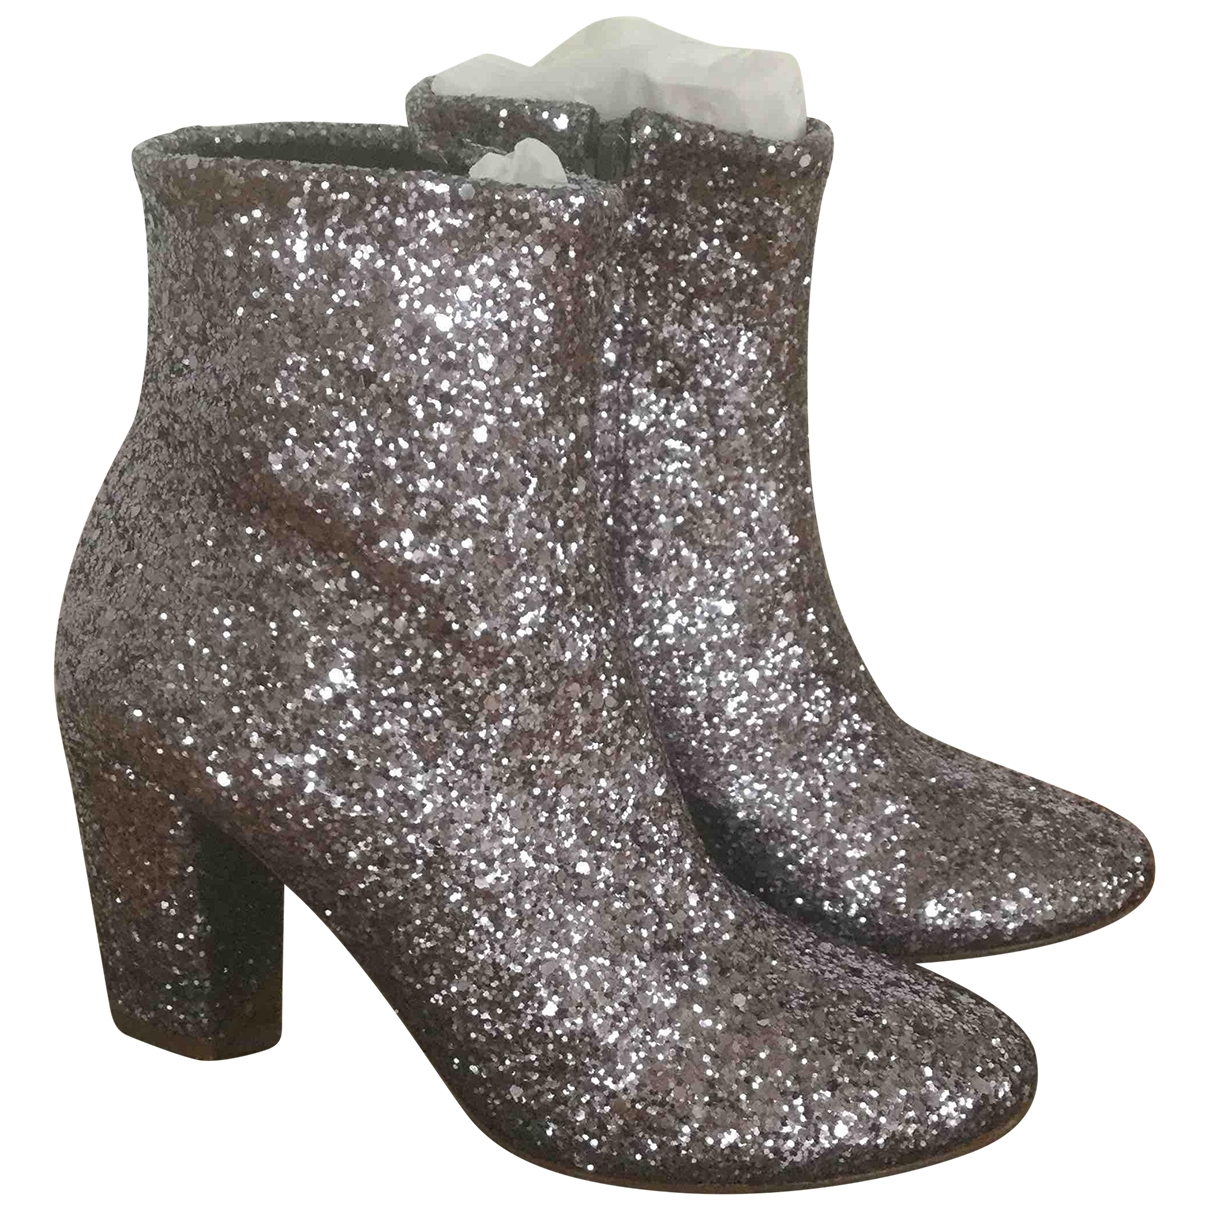 Patricia Blanchet \N Silver Glitter Boots for Women 37 EU